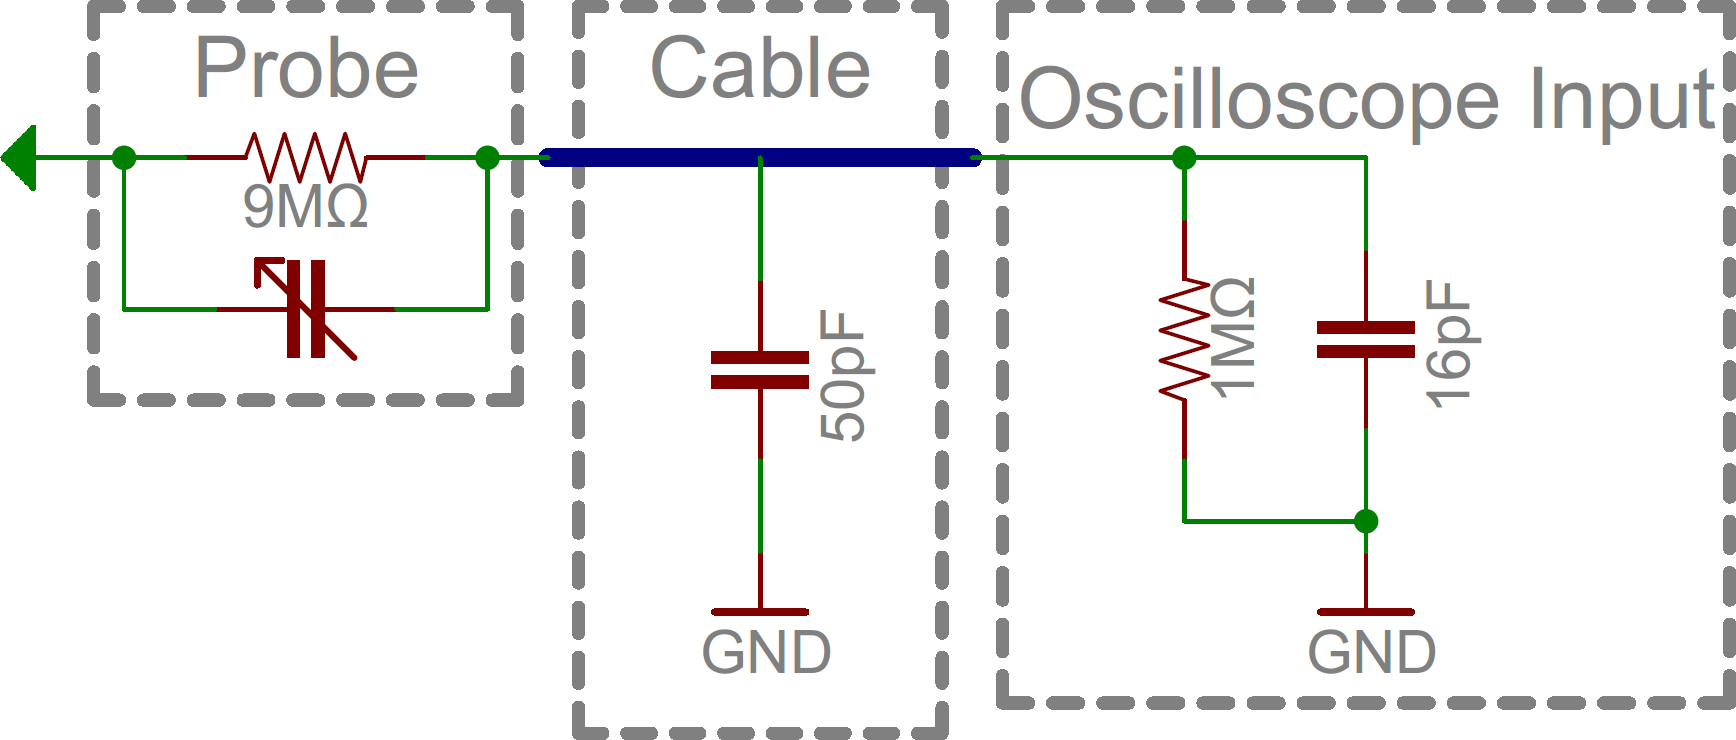 How To Use An Oscilloscope Schematic Power Cable Wiring Simplified Of Probe Transmission Wire Scope Input